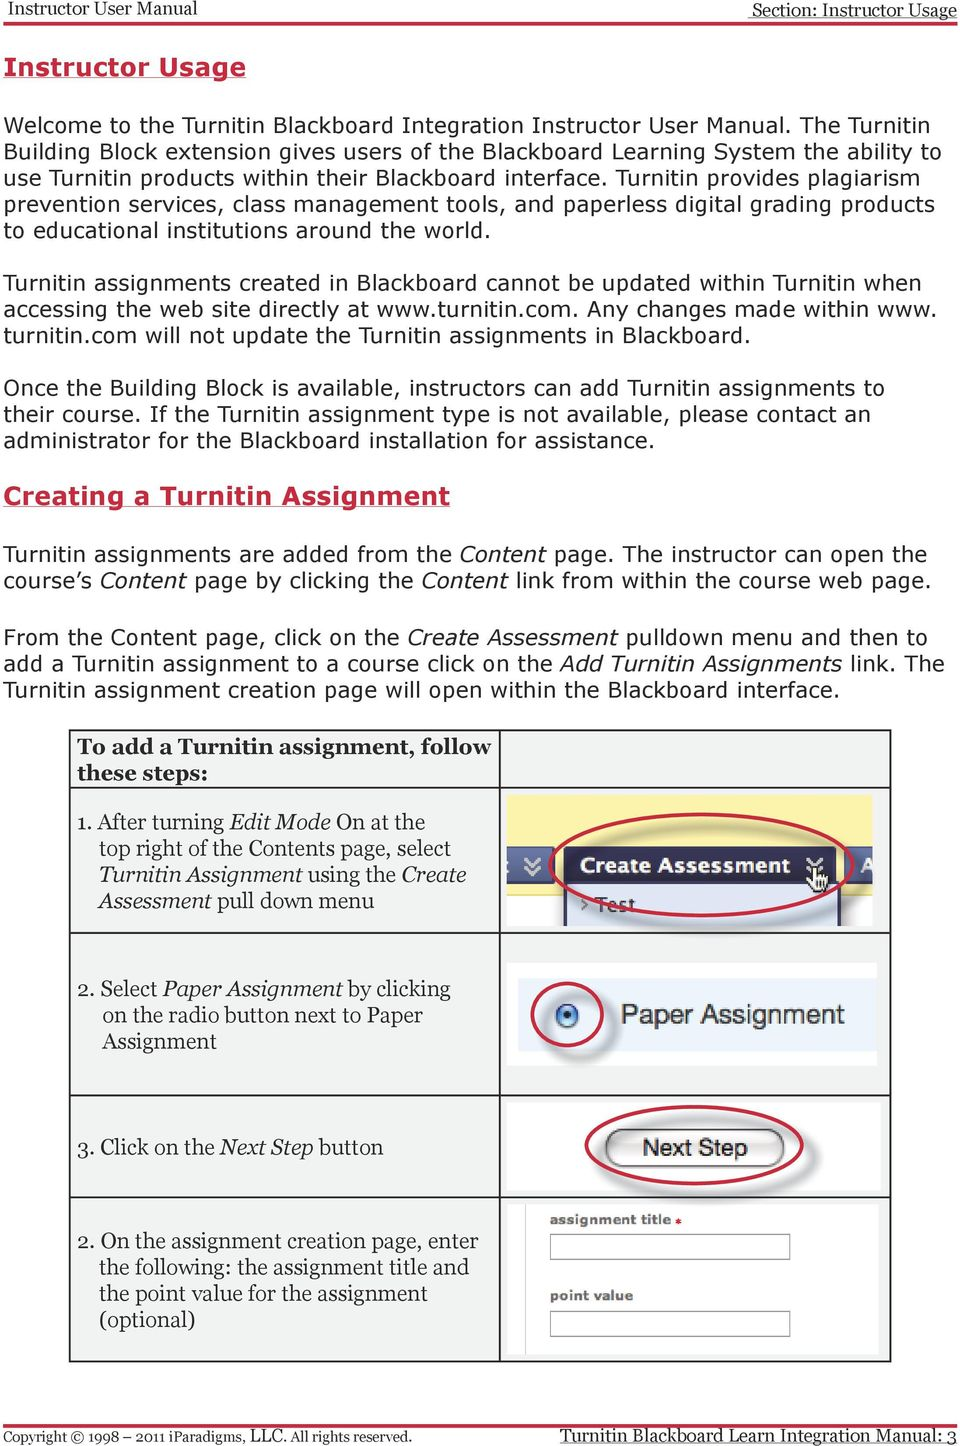 Turnitin provides plagiarism prevention services, class management tools, and paperless digital grading products to educational institutions around the world.